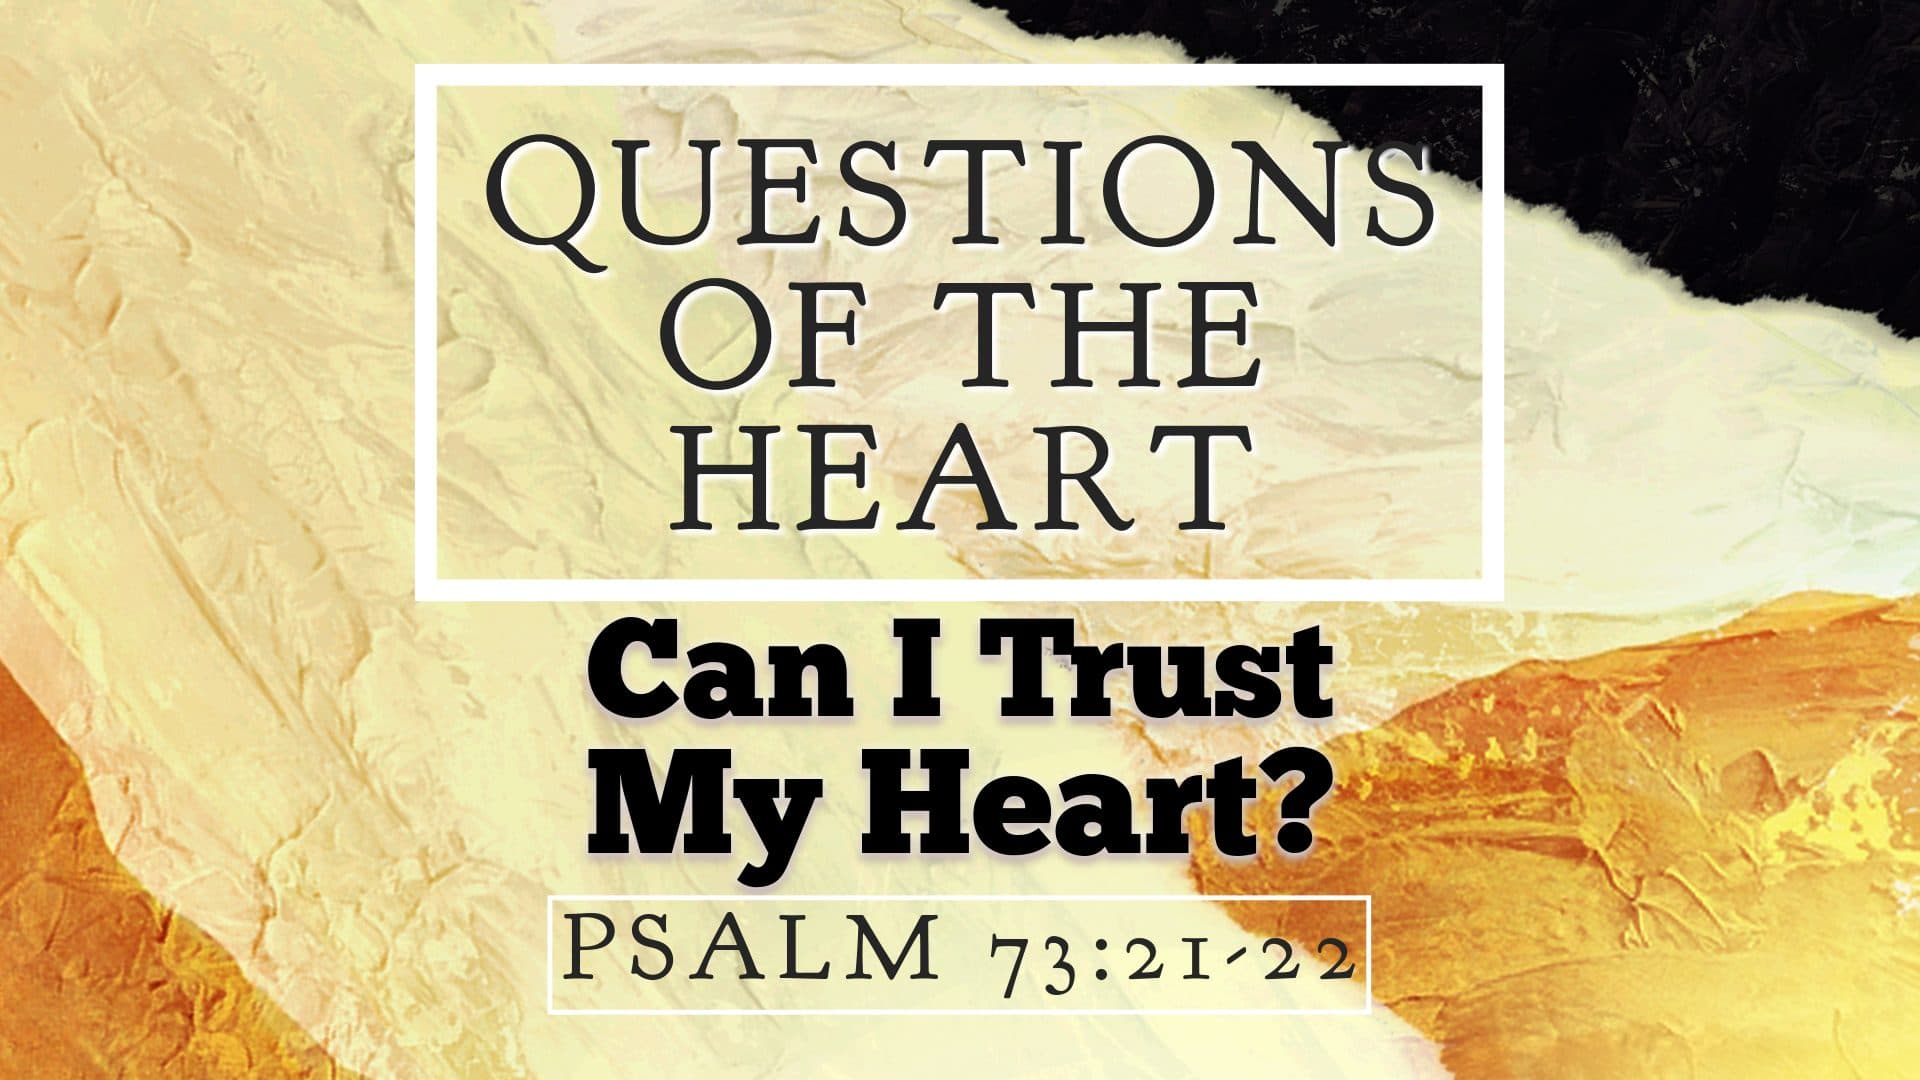 Can I Trust My Heart?